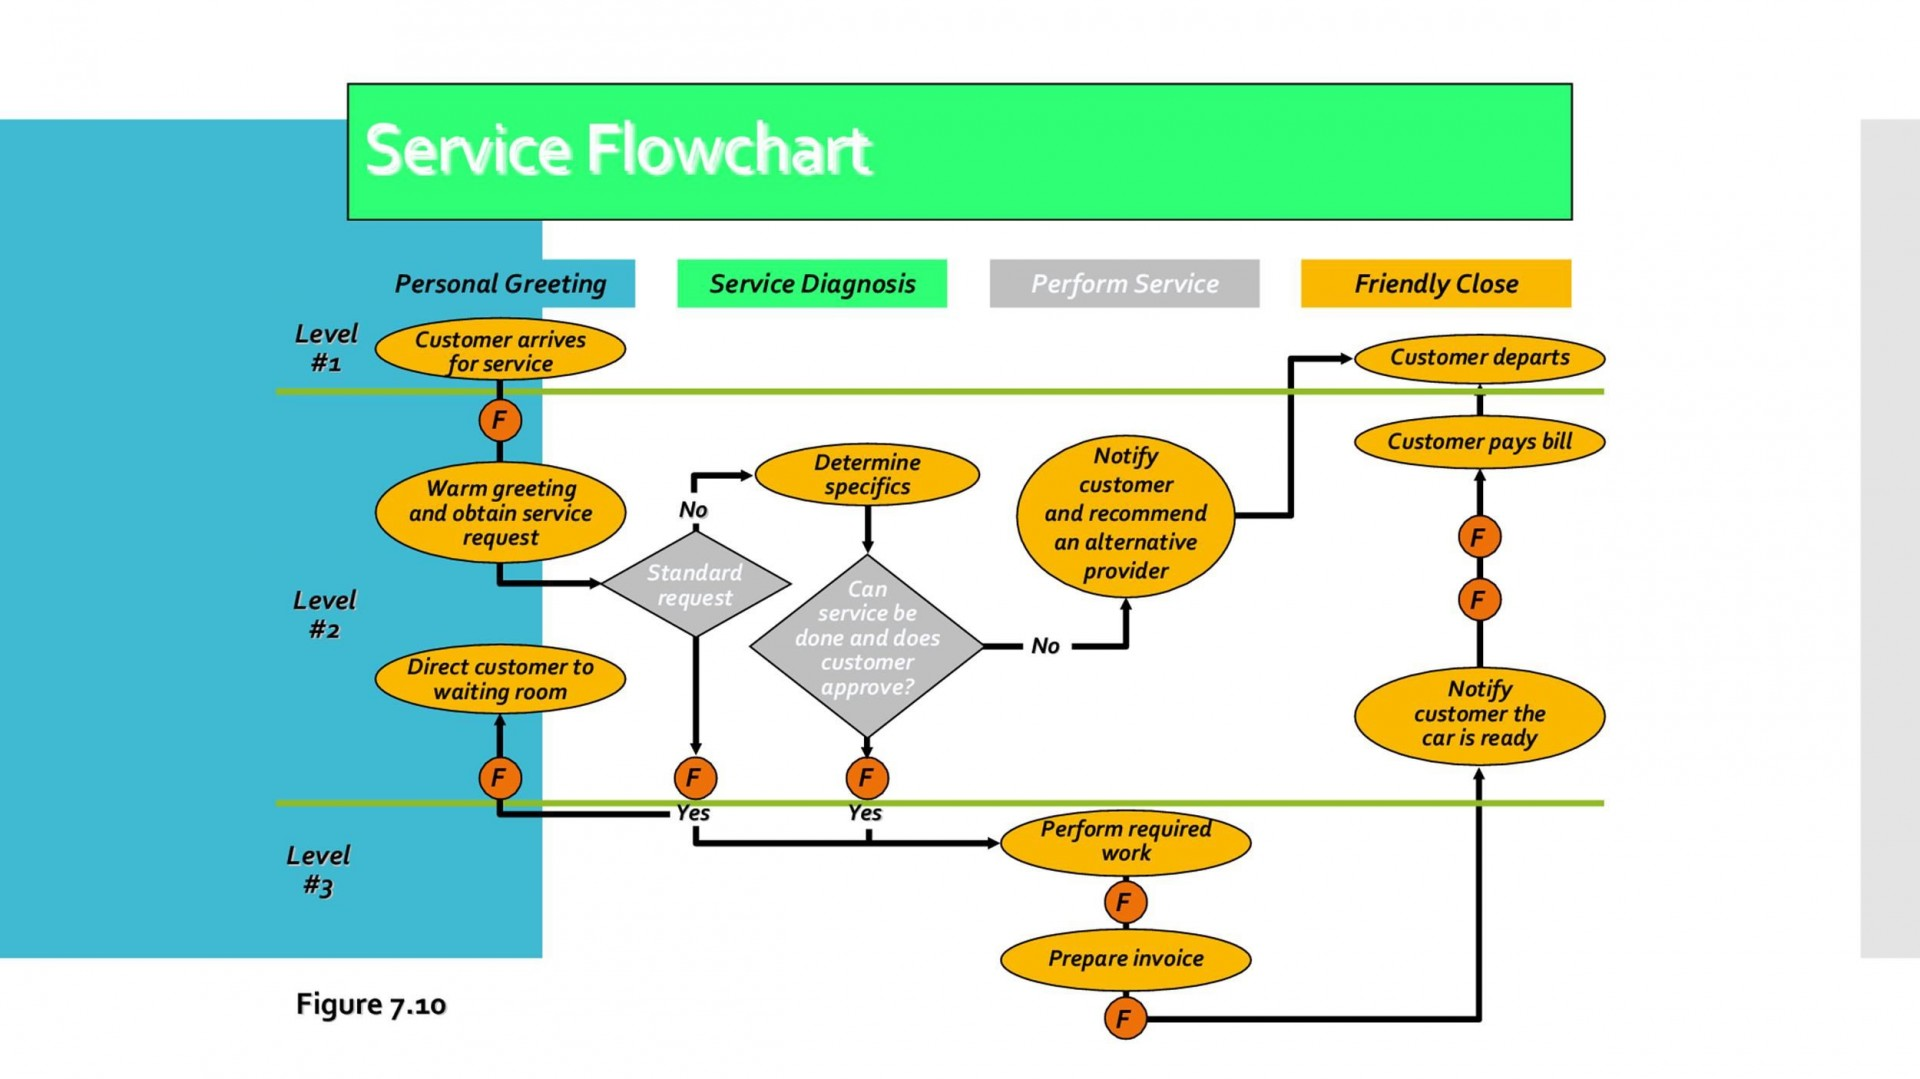 007 Frightening Flow Chart Template Excel 2016 Sample 1920